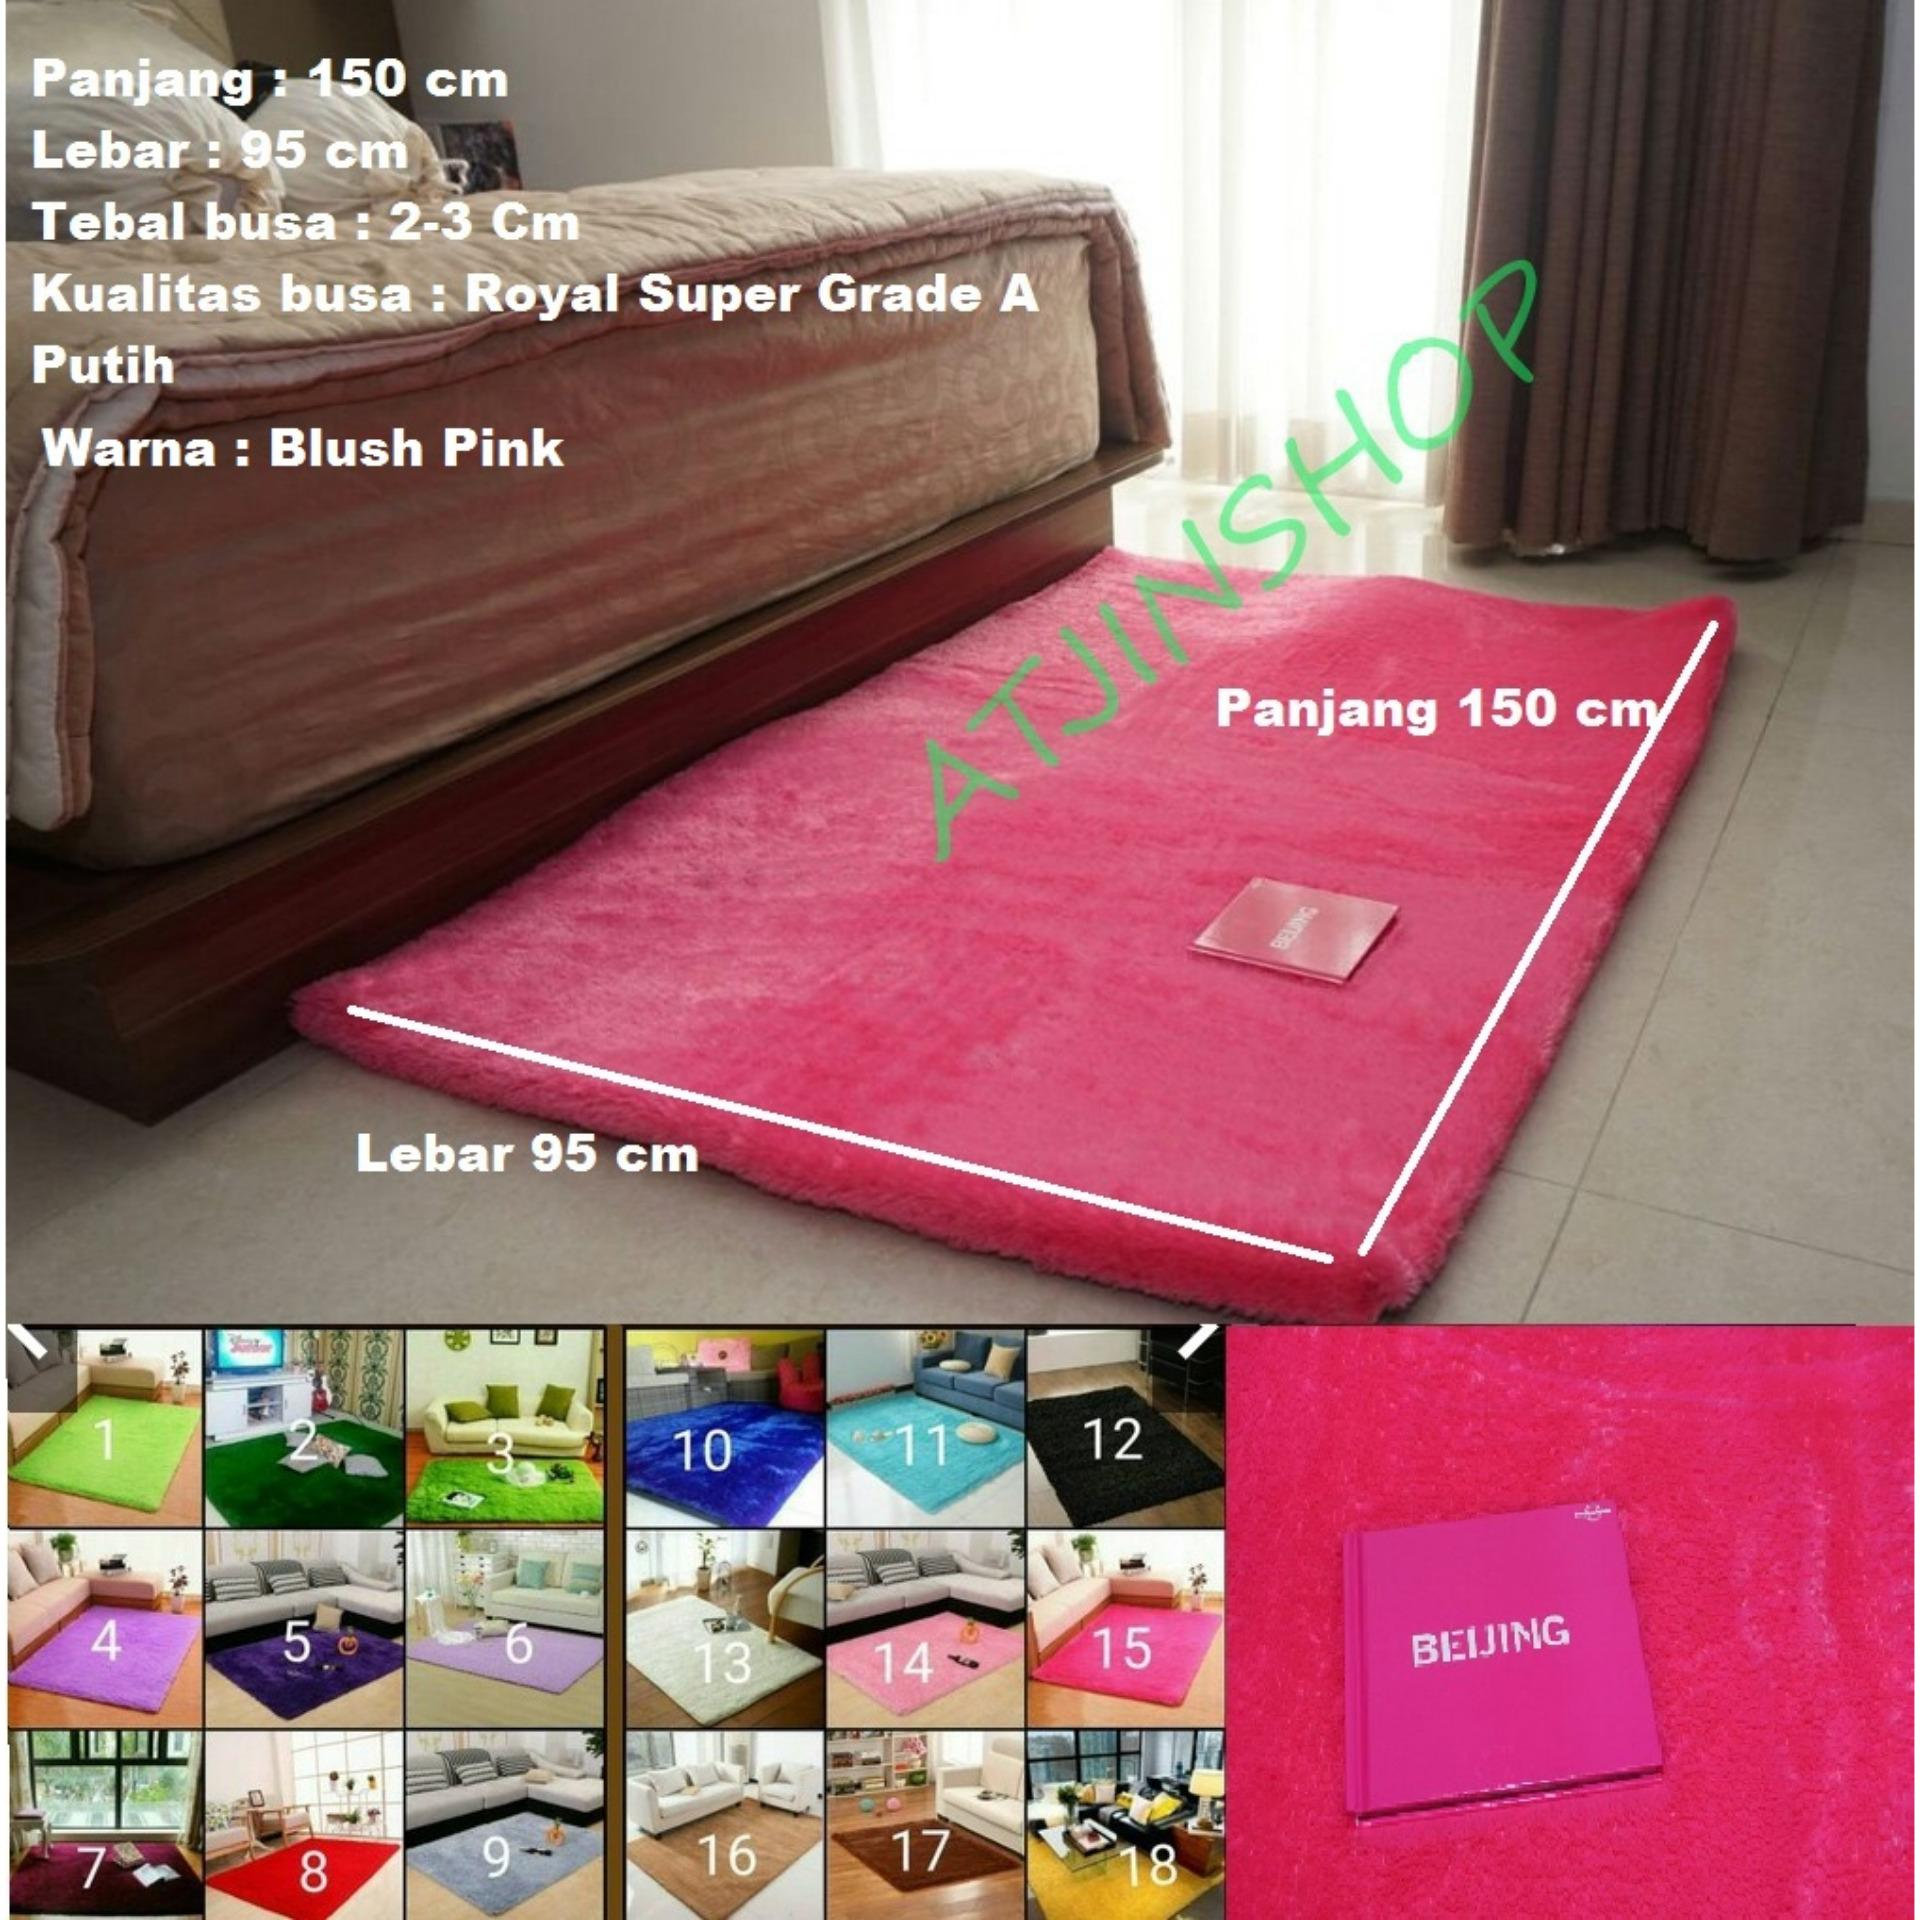 Review Tjincollection Karpet Bulu Rasfur Busa Polos Berkualitas 150X100Cm Ready 16 Warna Tjincollection Di Jawa Barat